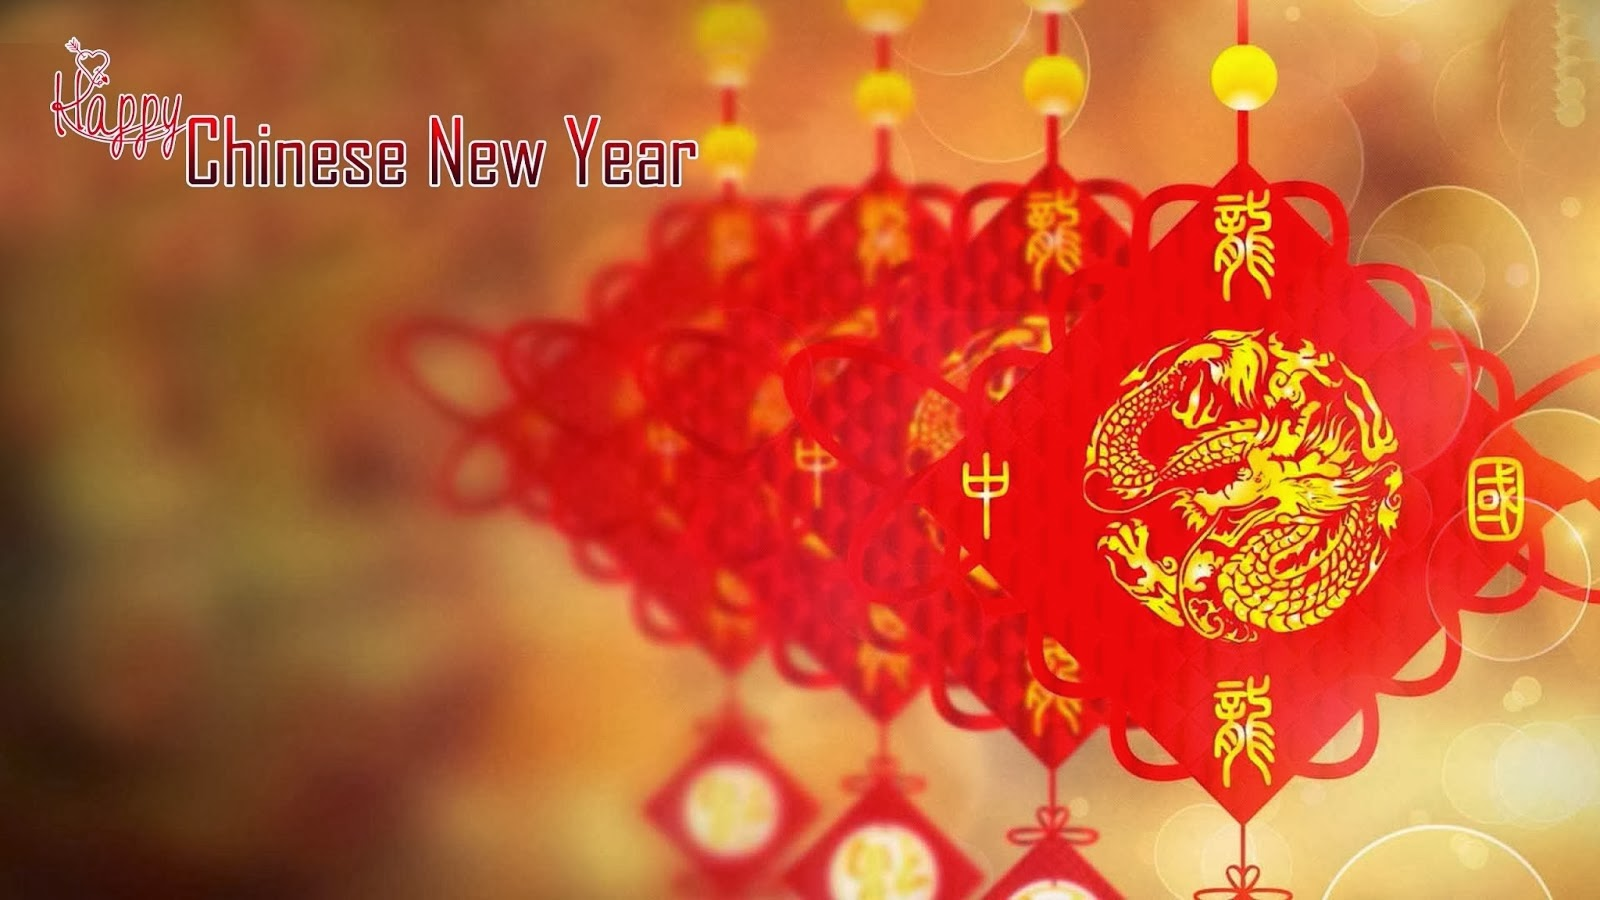 Happy Chinese New Year Wishes Cards Lunar New Year Quotes And